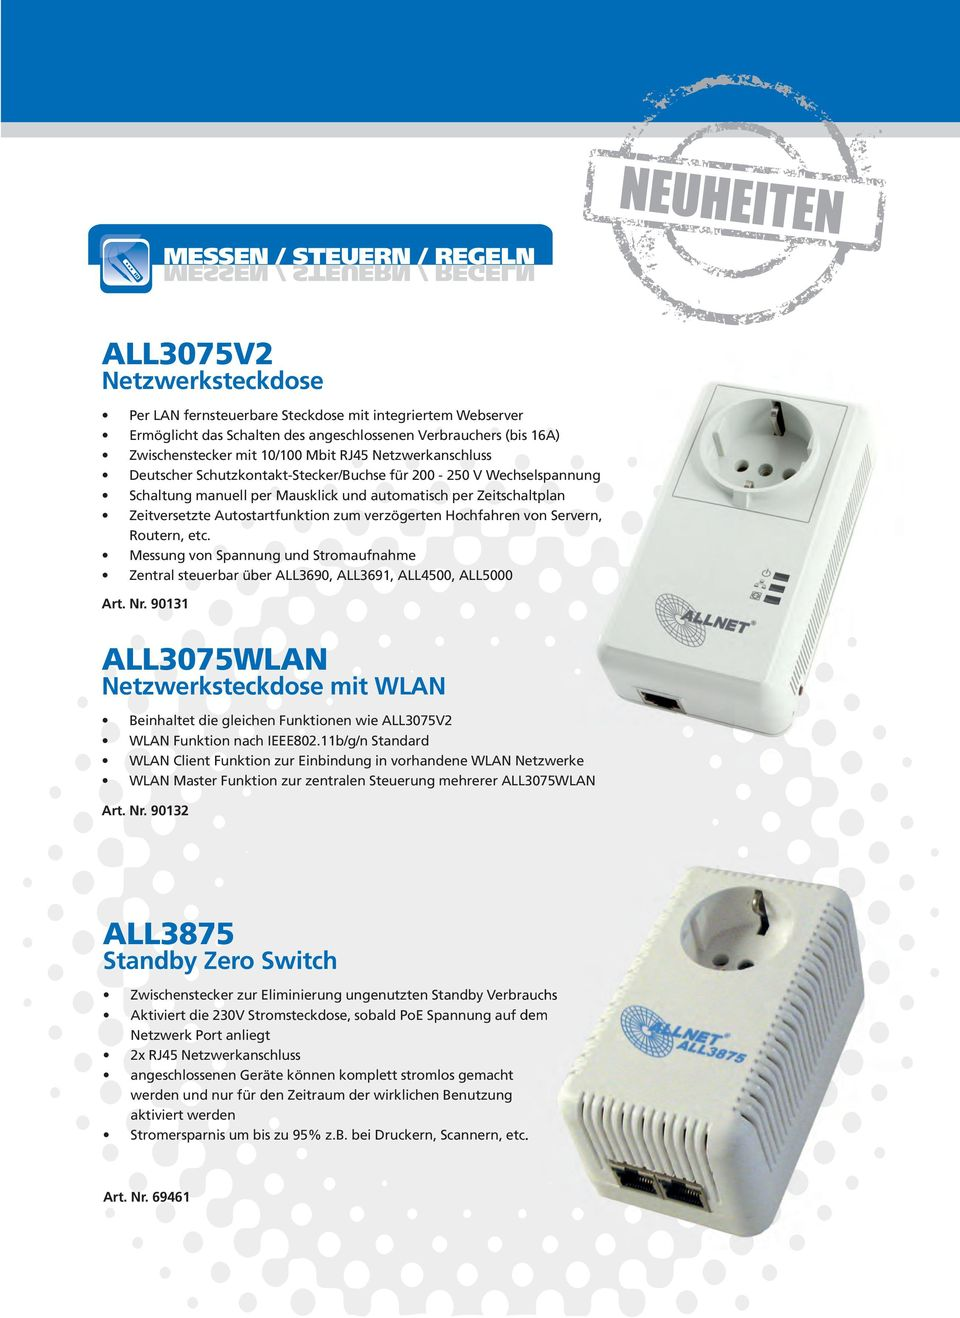 POWERLINE ALL ALL168222SINGLE 200MBPS POWERLINE/300MBPS WLAN 200MBPS ...